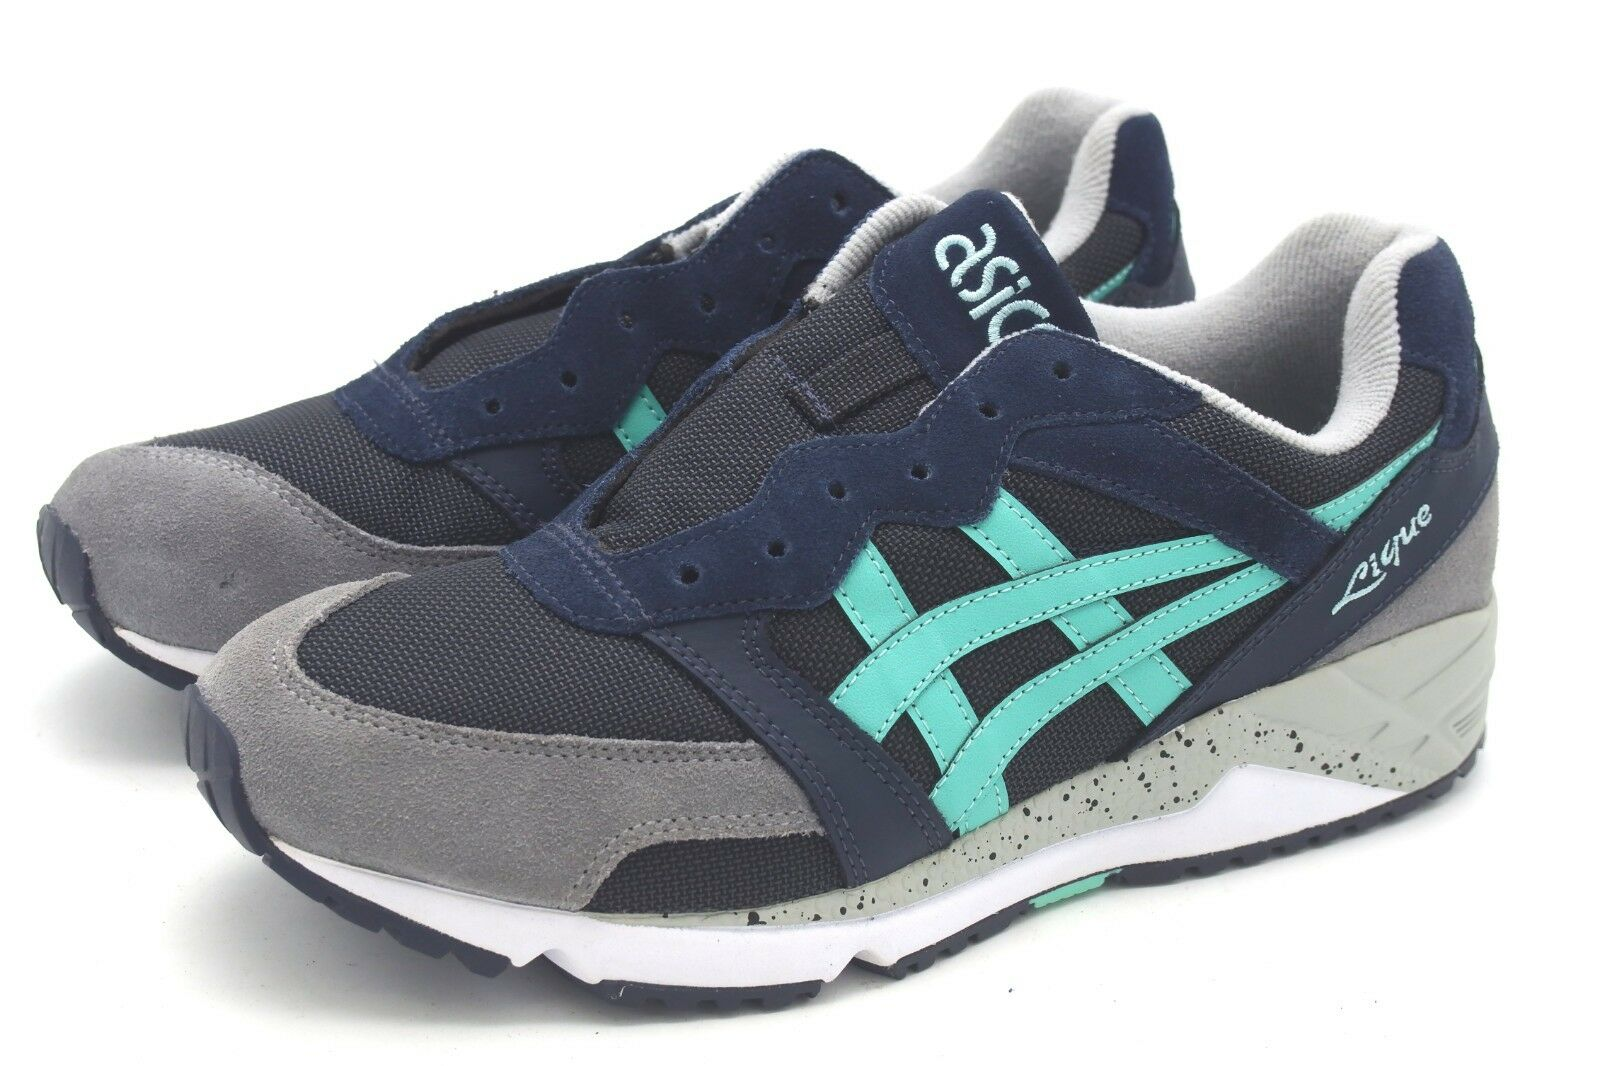 J7553 New Women's Asics Gel Lique India Ink Cocatoo Running shoes 9 M